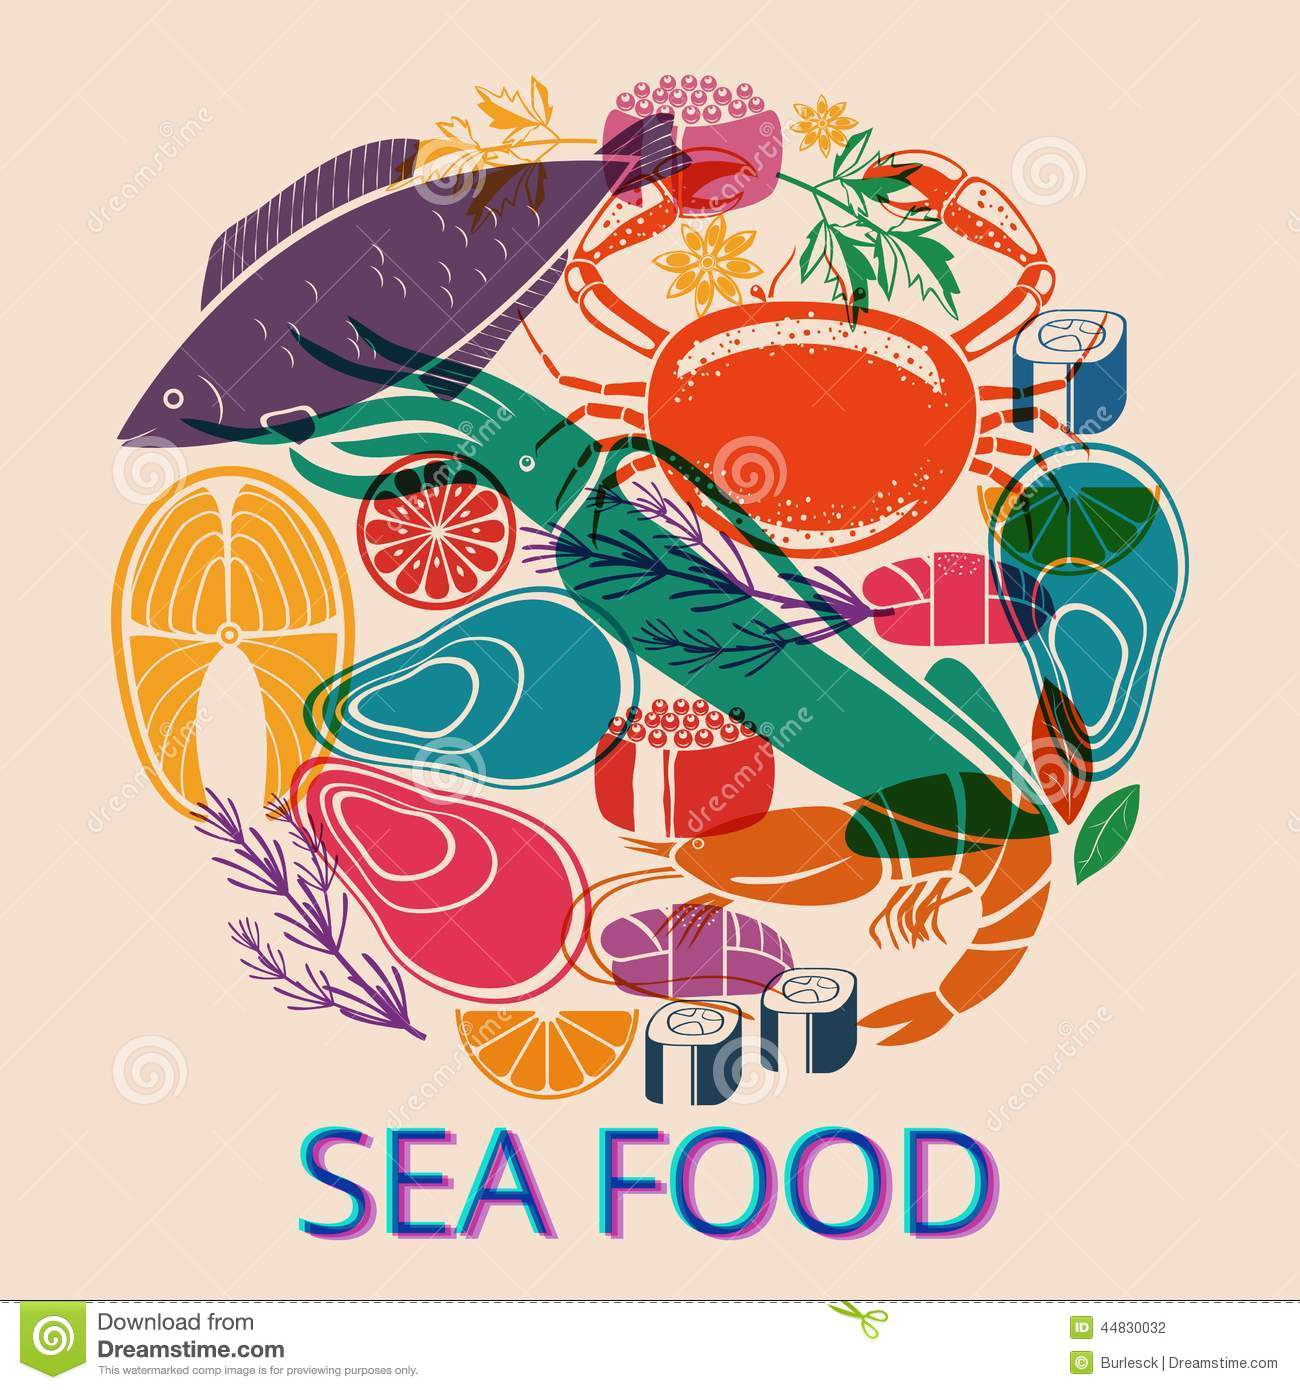 Seafood Graphic With Various Fish And Shellfish Stock ...